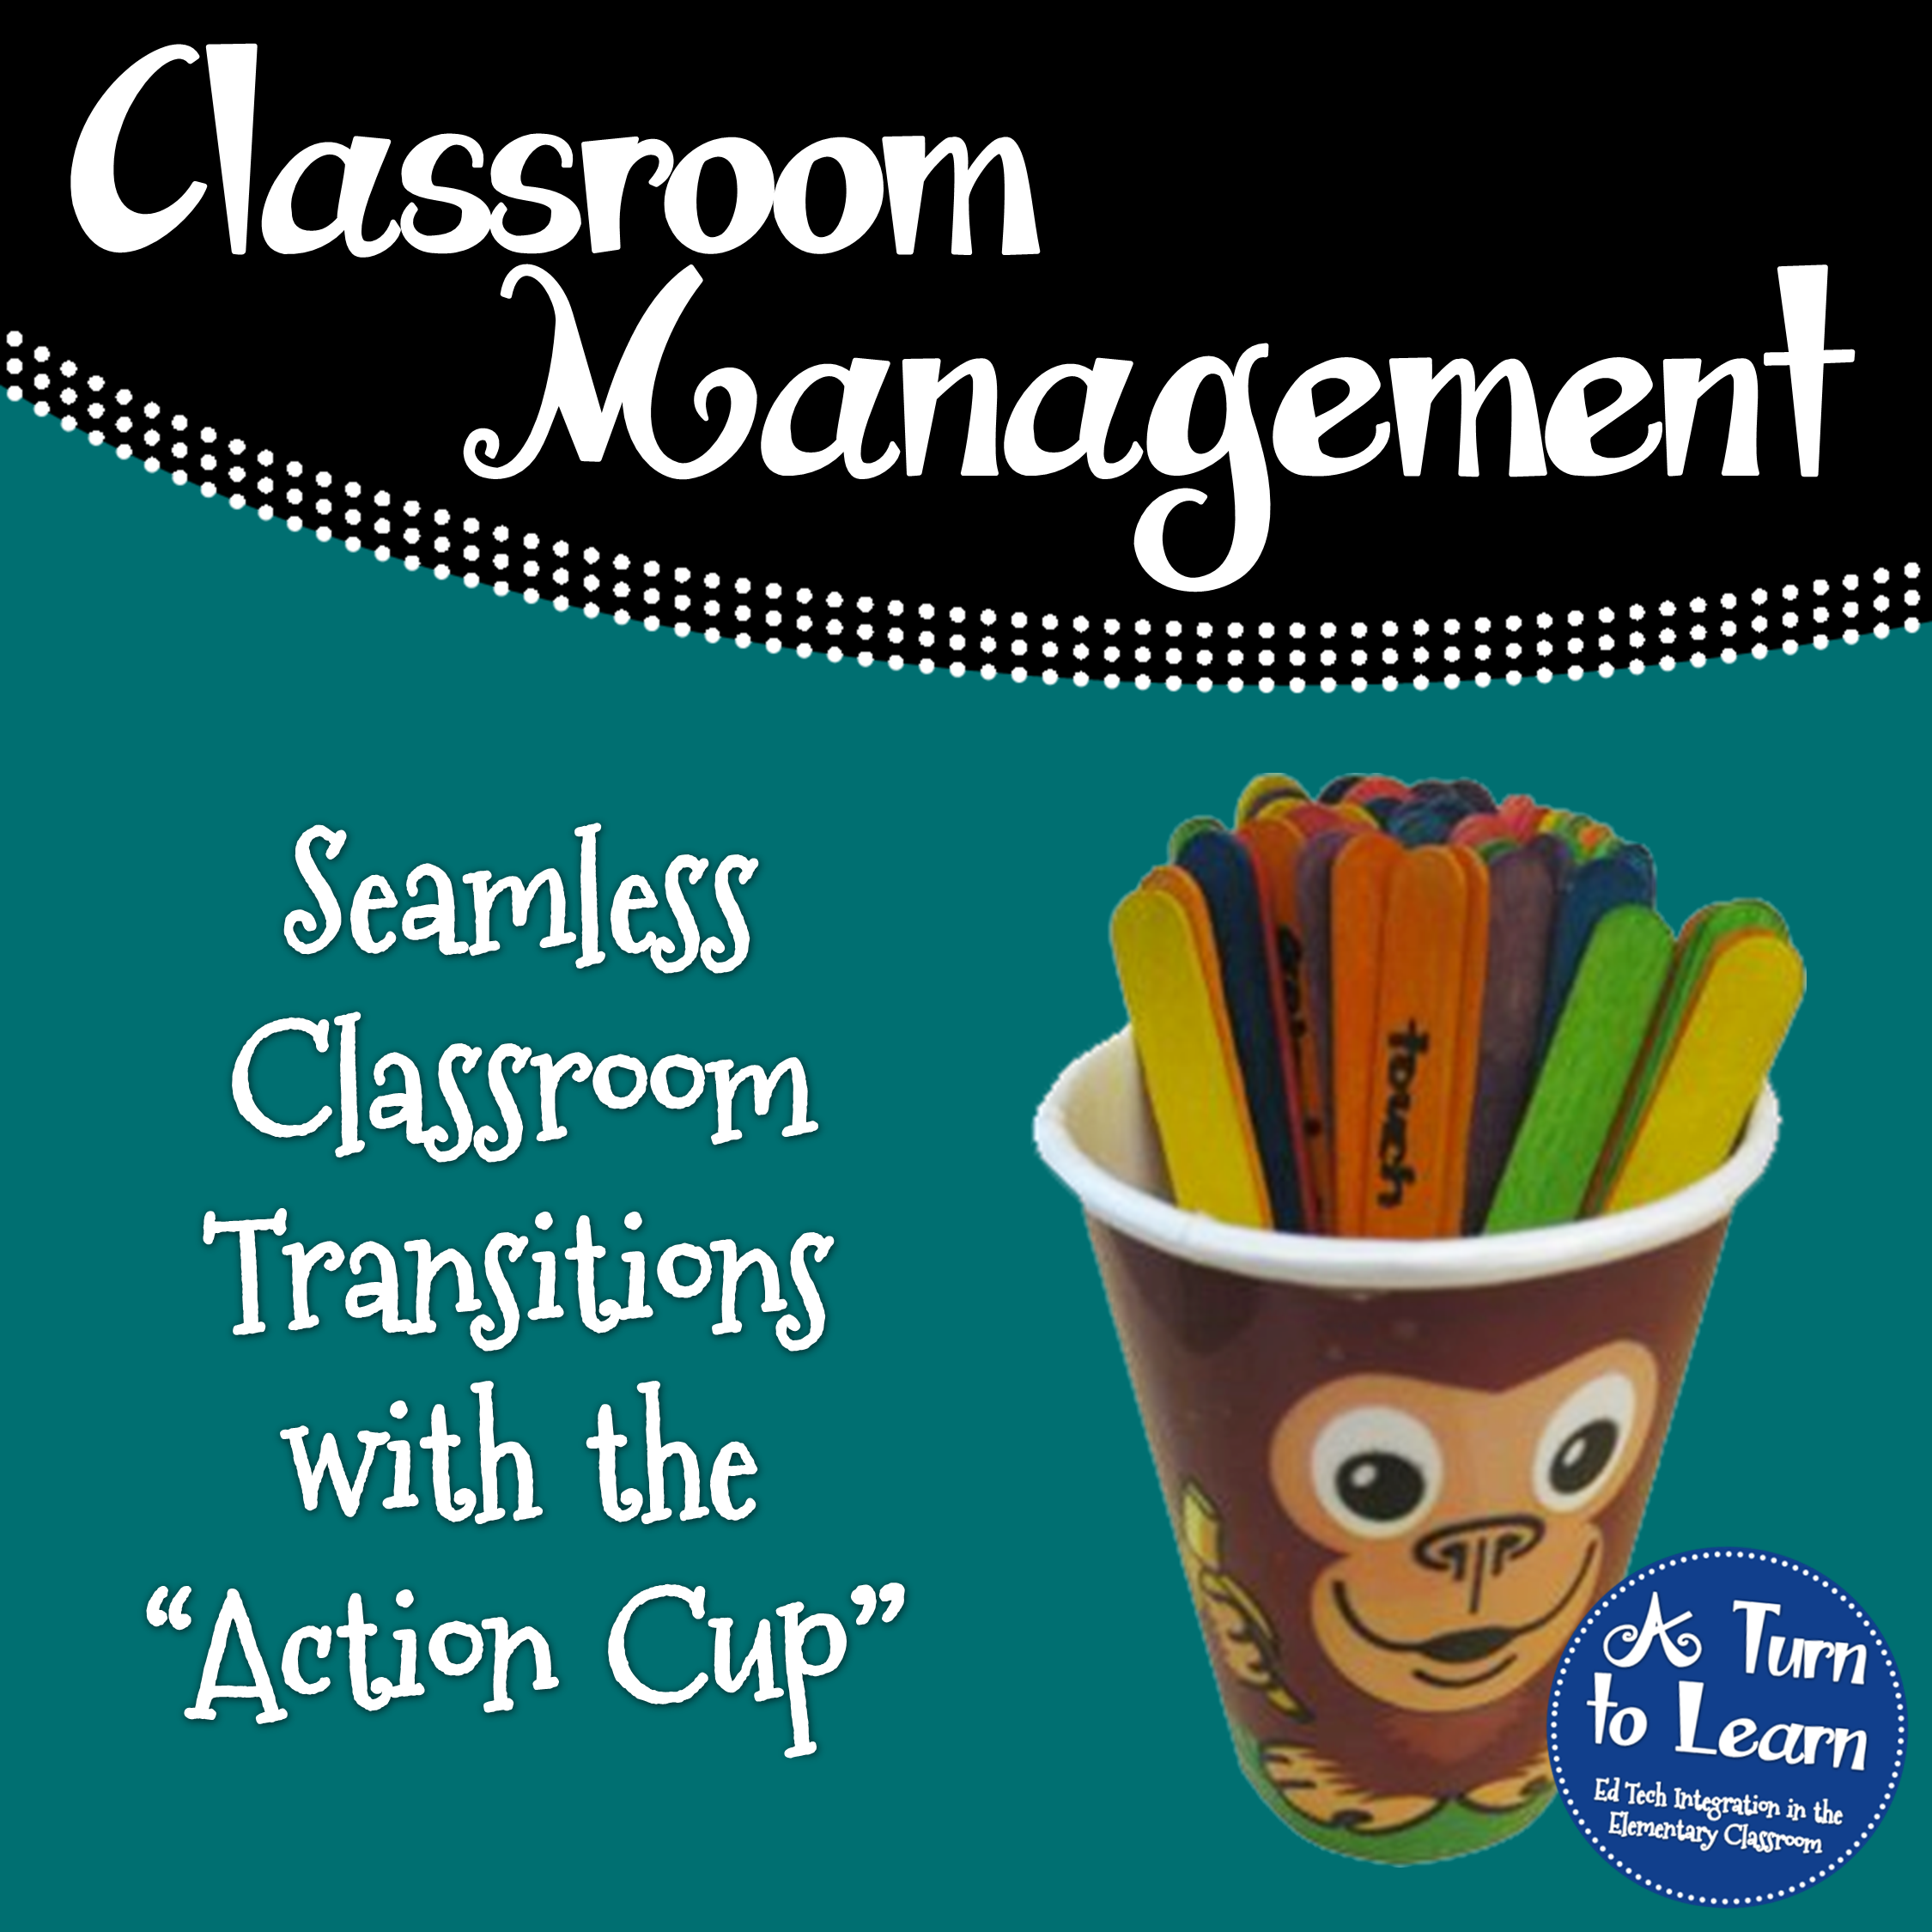 Using an Action Cup for Classroom Transitions